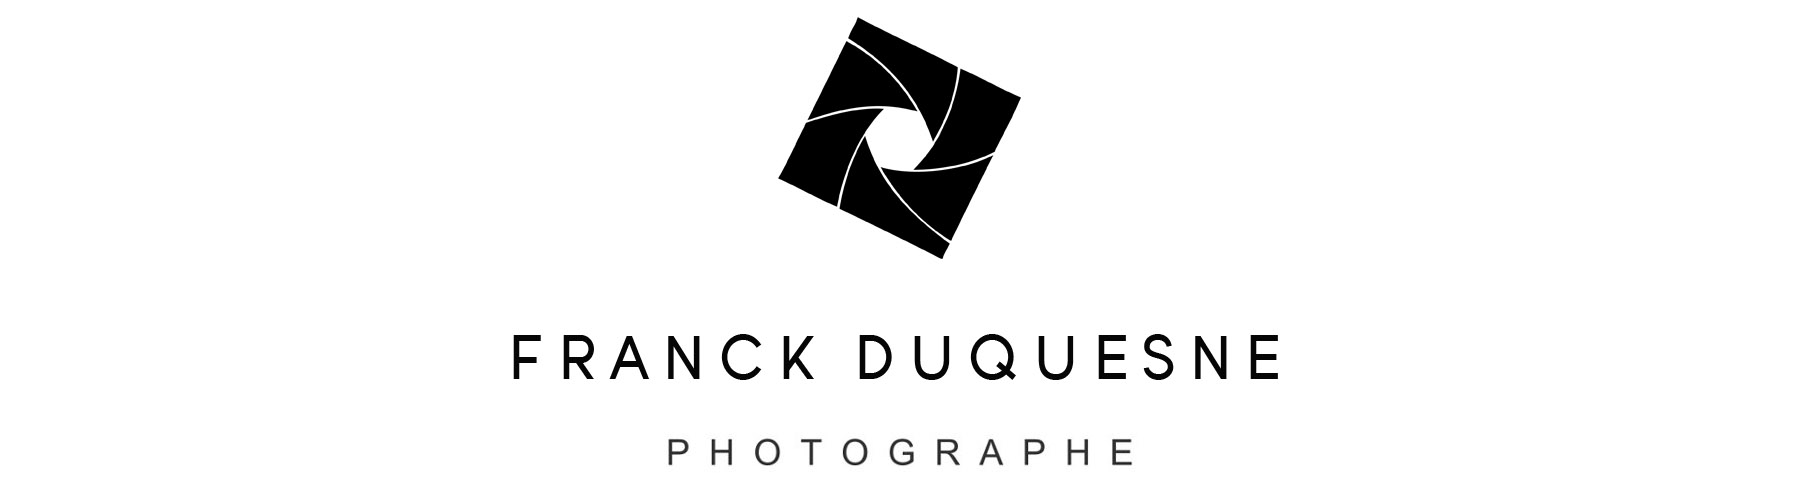 Franck Duquesne photographe